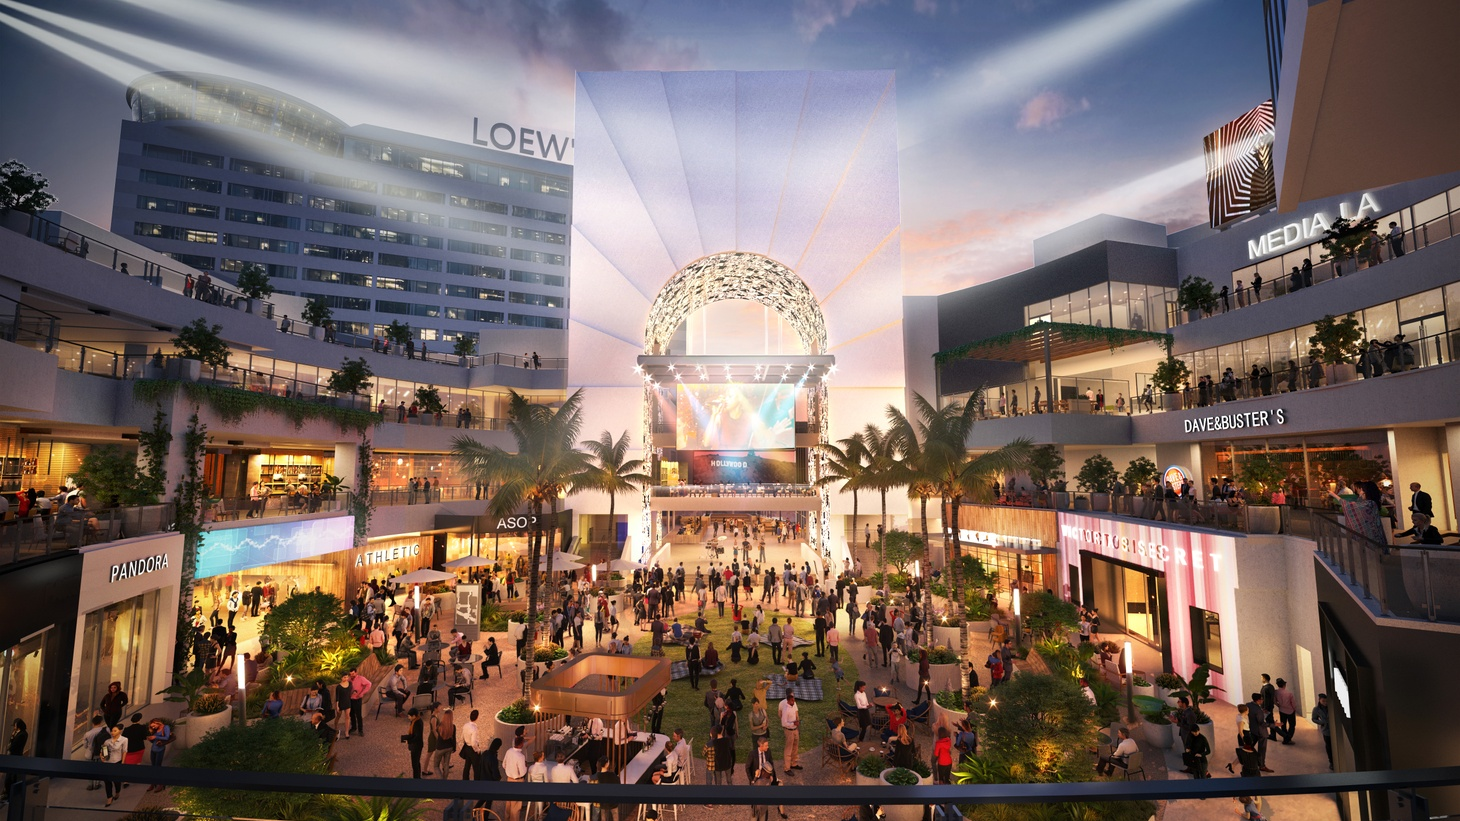 A rendering of the Ovation courtyard on Hollywood and Highland, featuring green space, Dave and Buster's, Victoria's Secret, and Pandora.